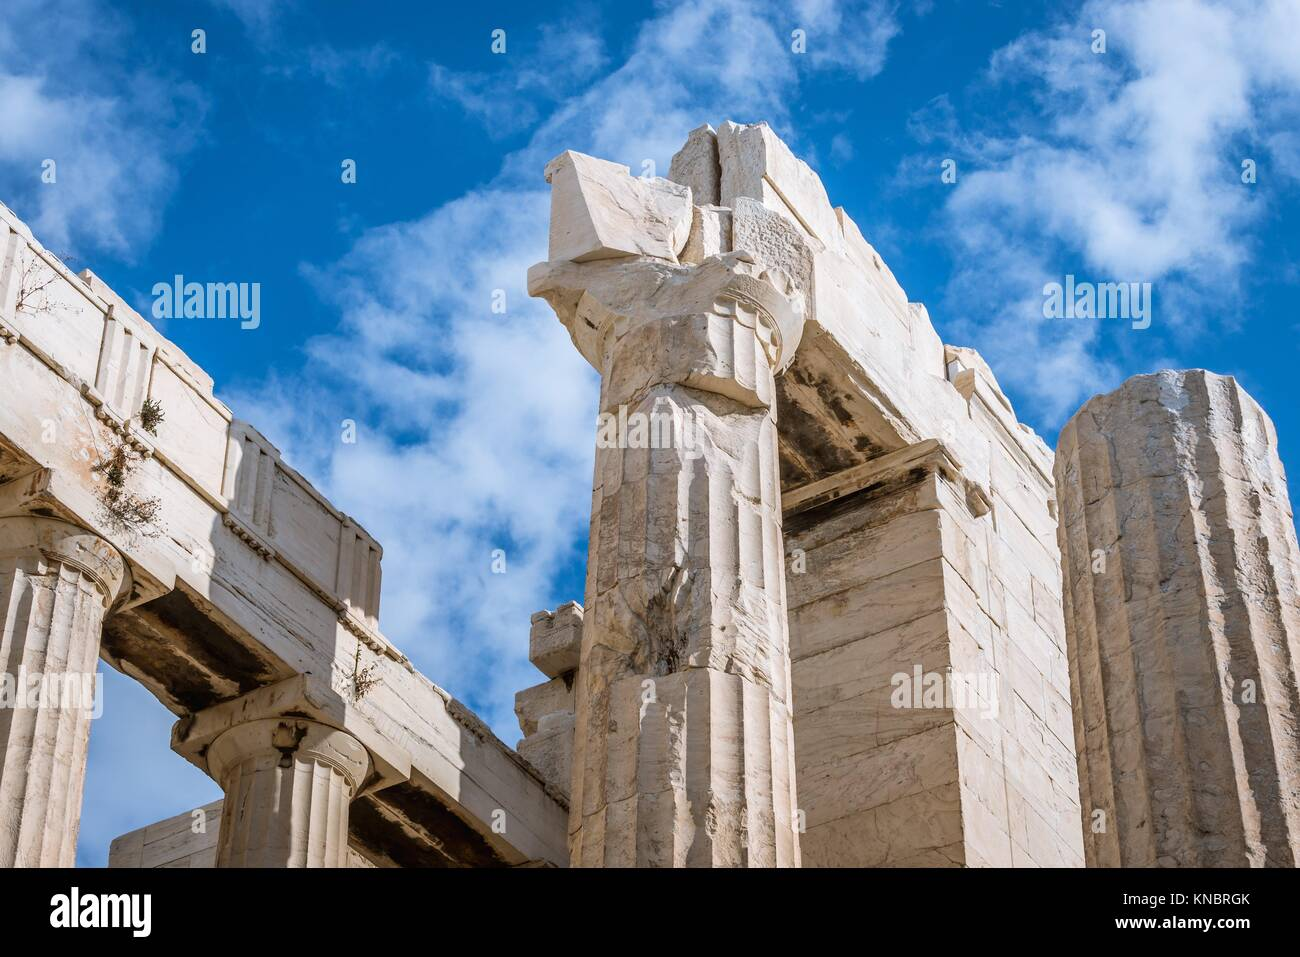 Close up on monumental gateway called Propylaea, entrance to the top of Acropolis of Athens city, Greece. - Stock Image